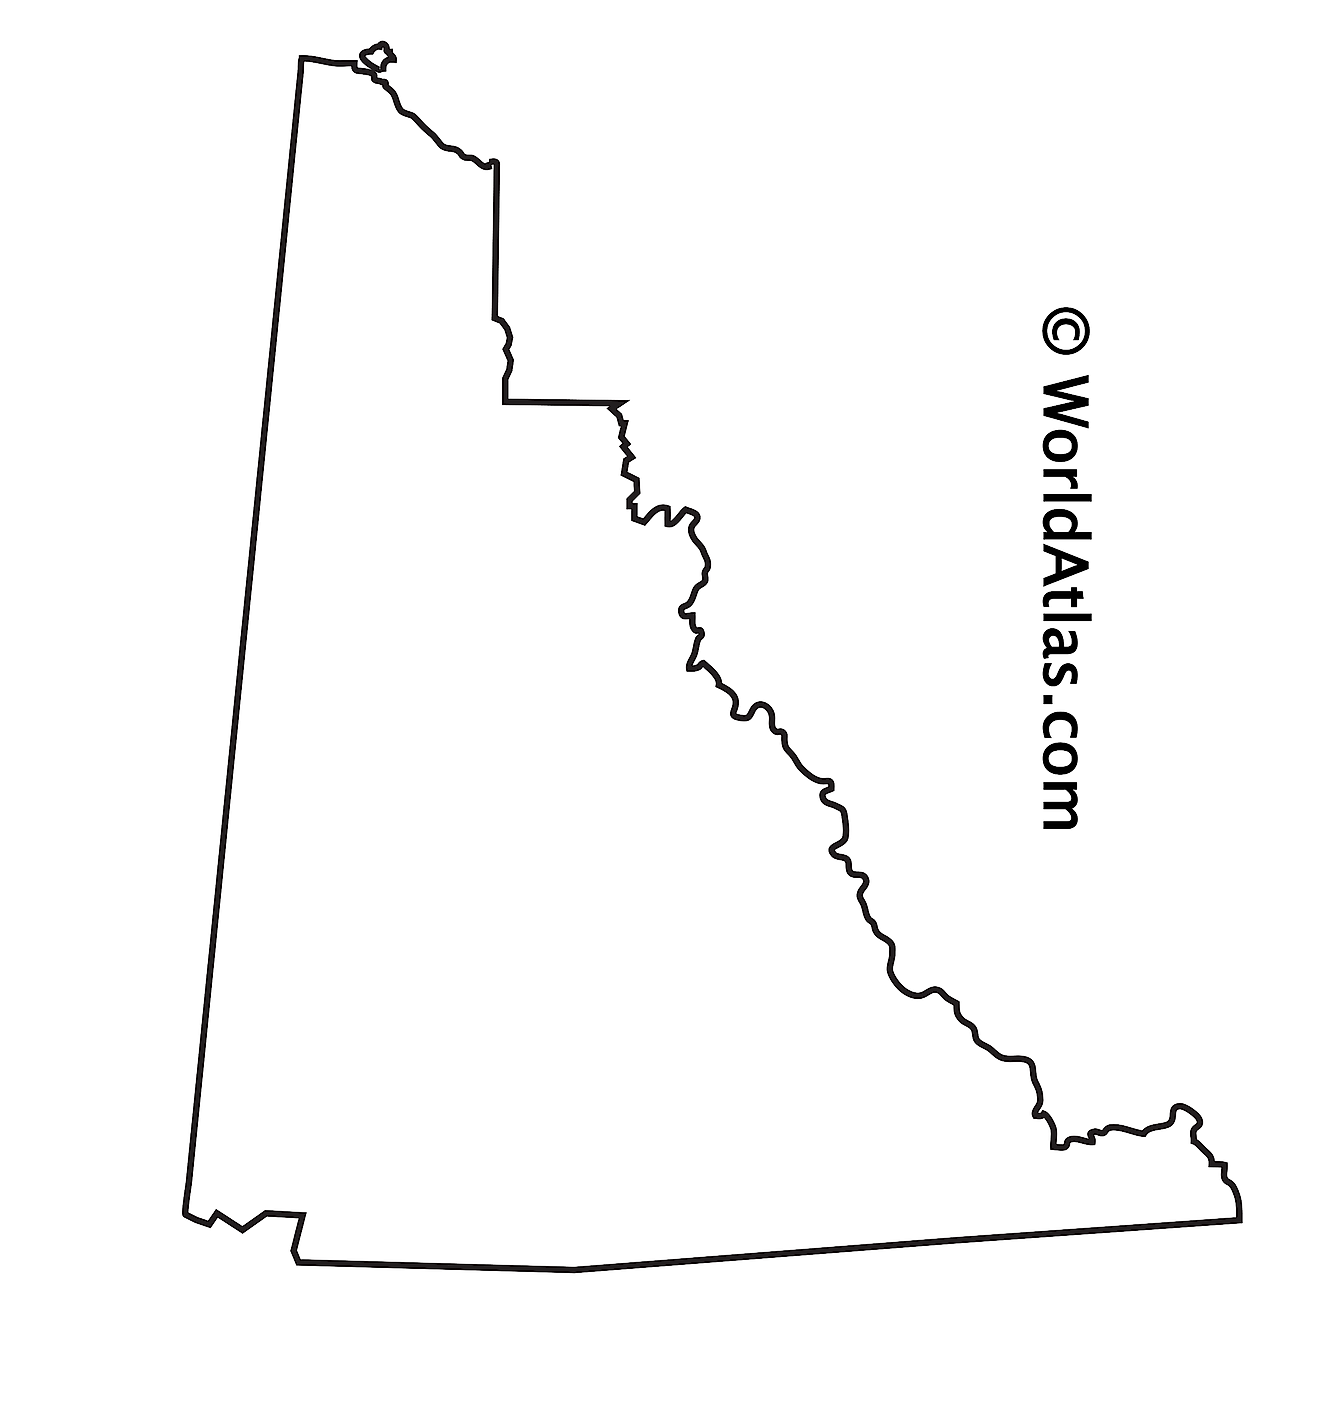 Blank Outline Map of Yukon